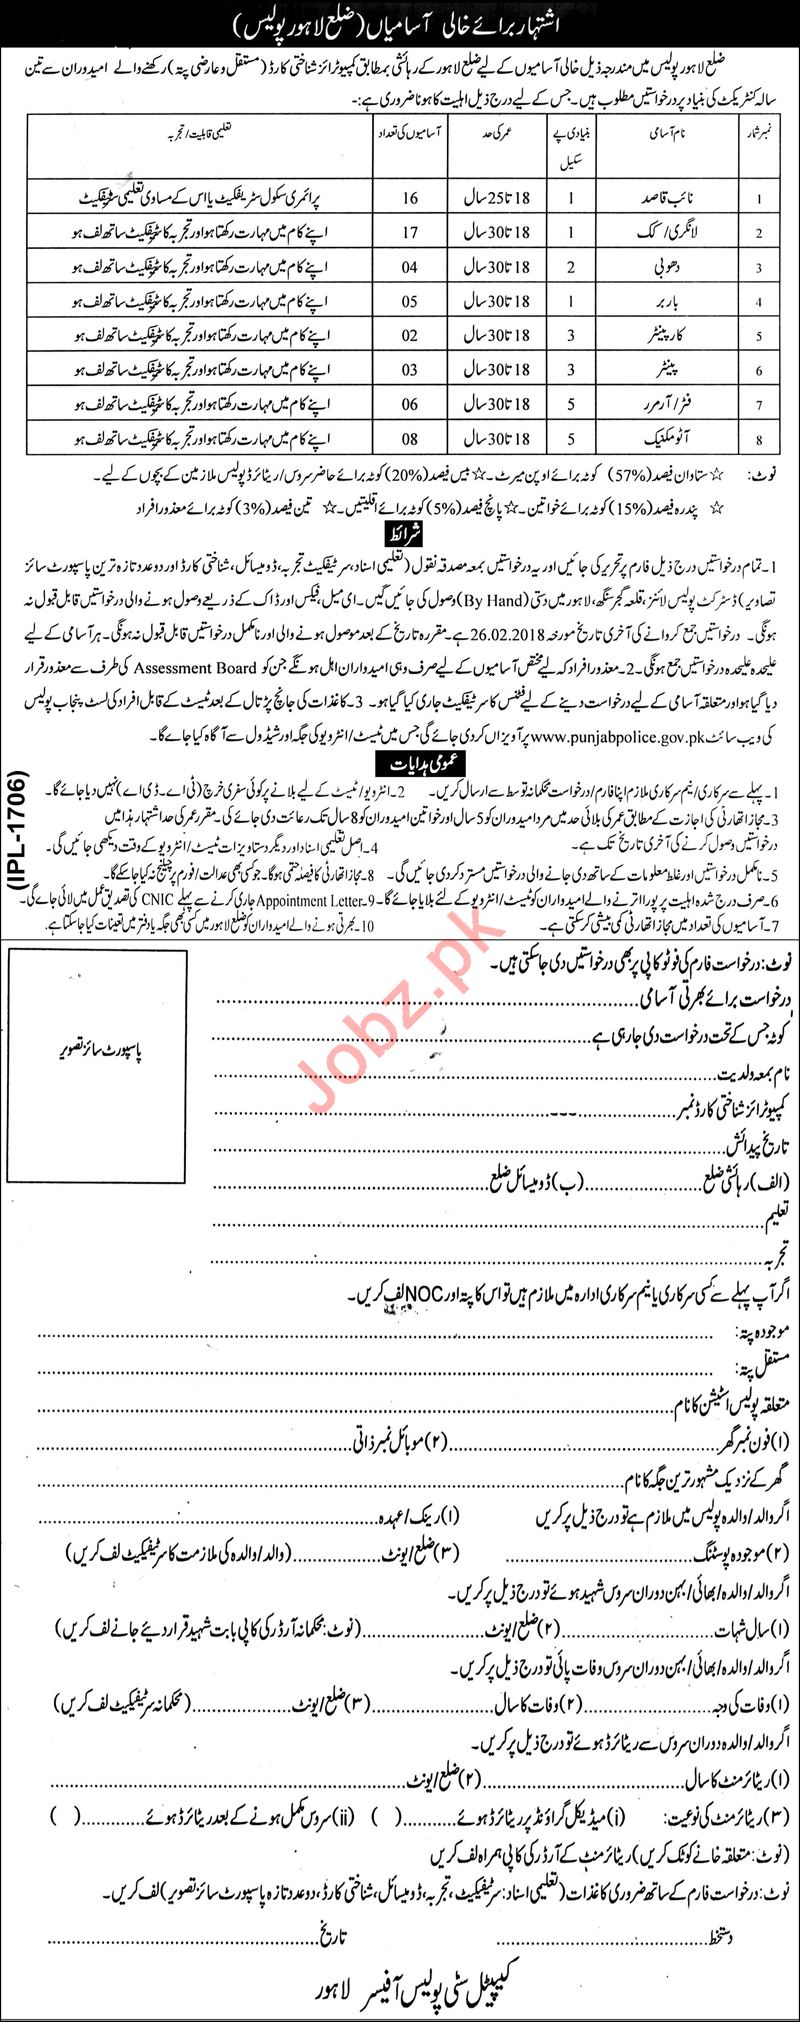 Punjab Police jobs in Lahore 2018